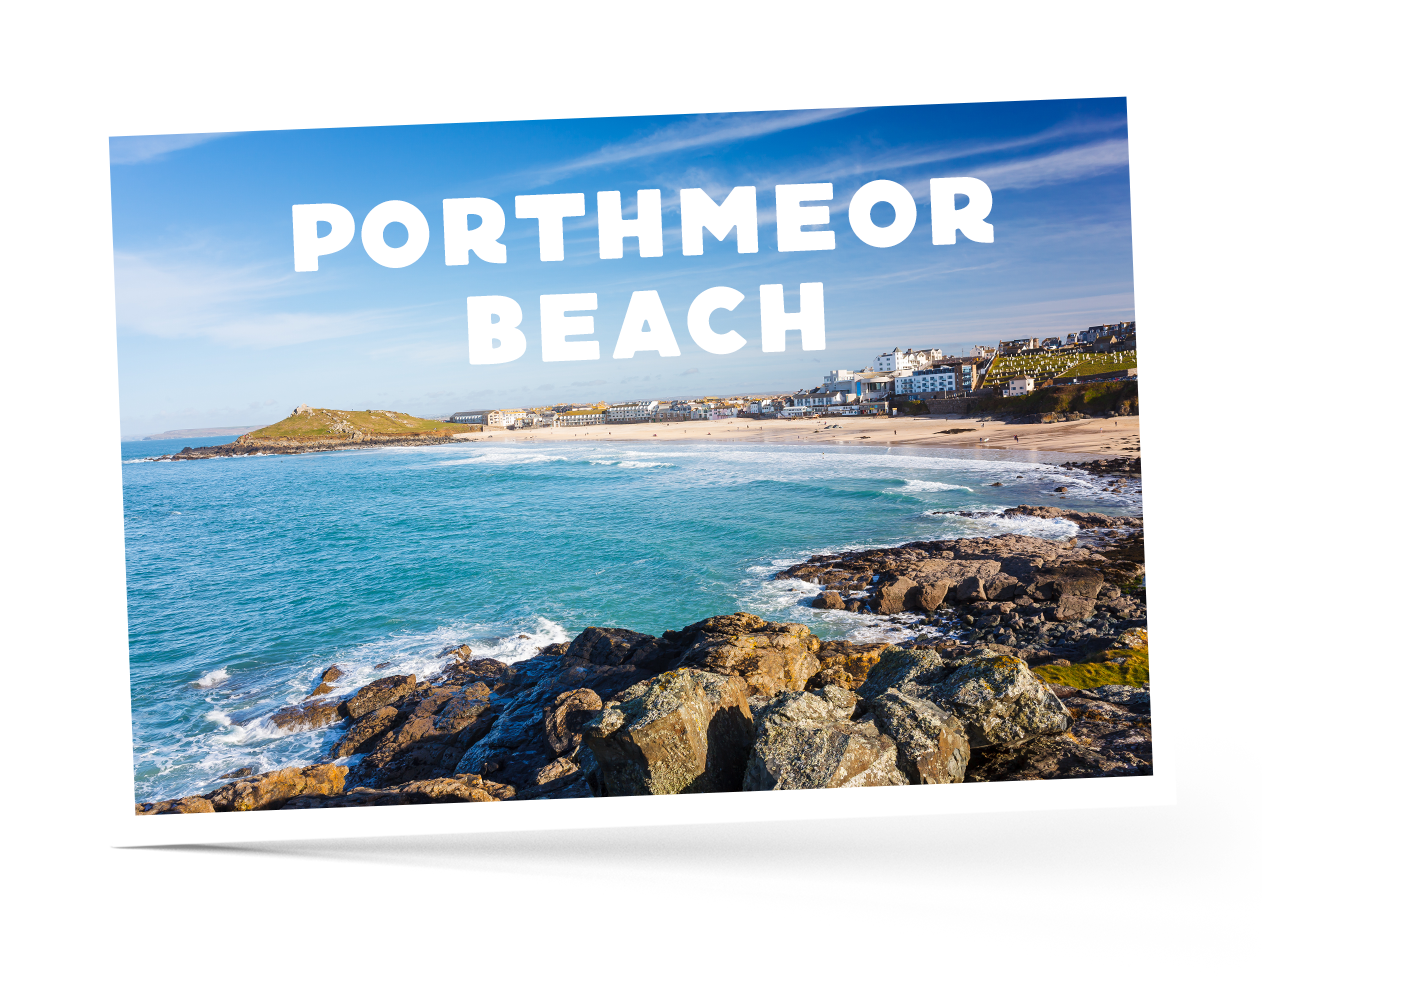 Blue skies over Porthmeor beach in Cornwall